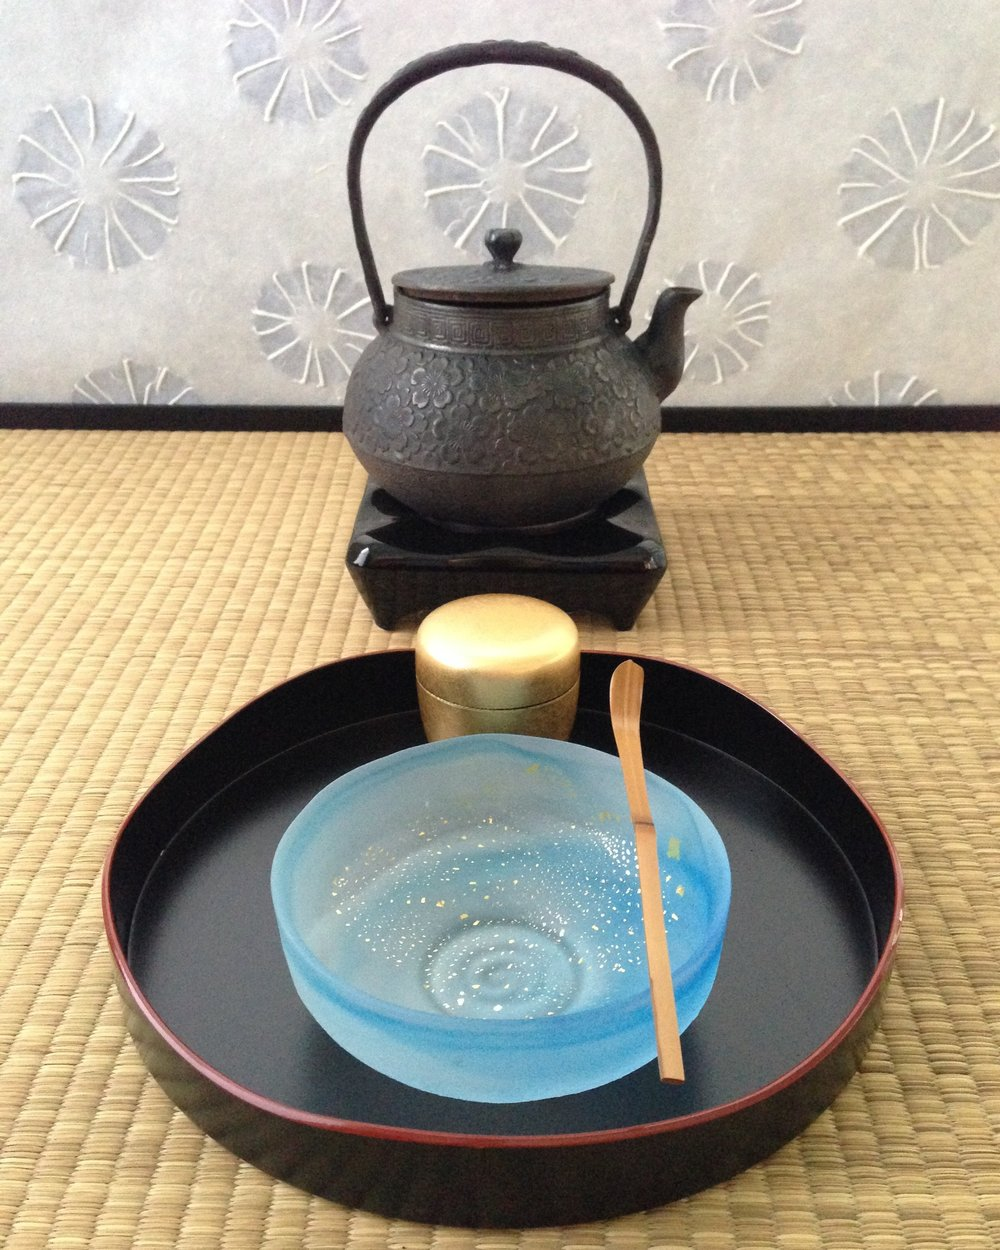 Utensils for the Bonryaku Temae